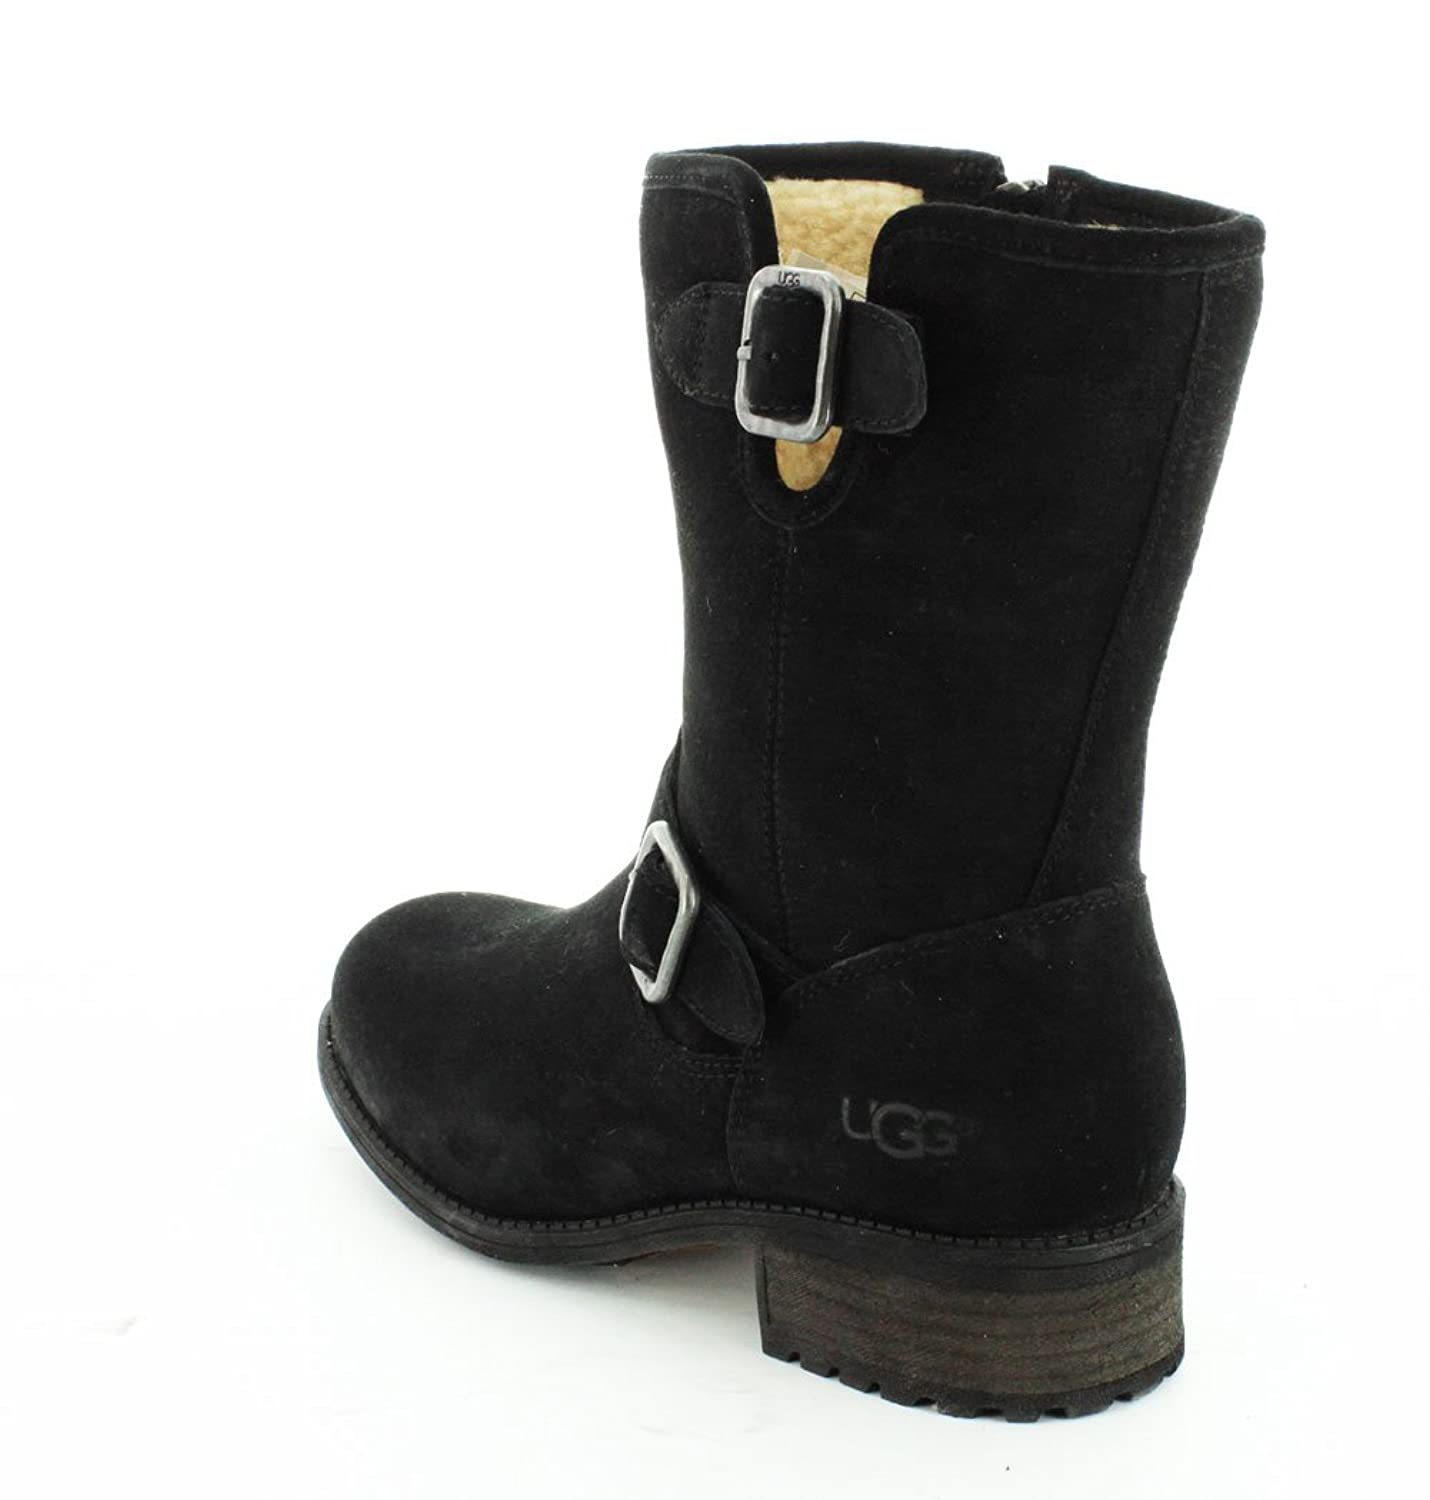 a13ab6b6d26 UGG Australia Womens Chaney Closed Toe Cold Weather Boots